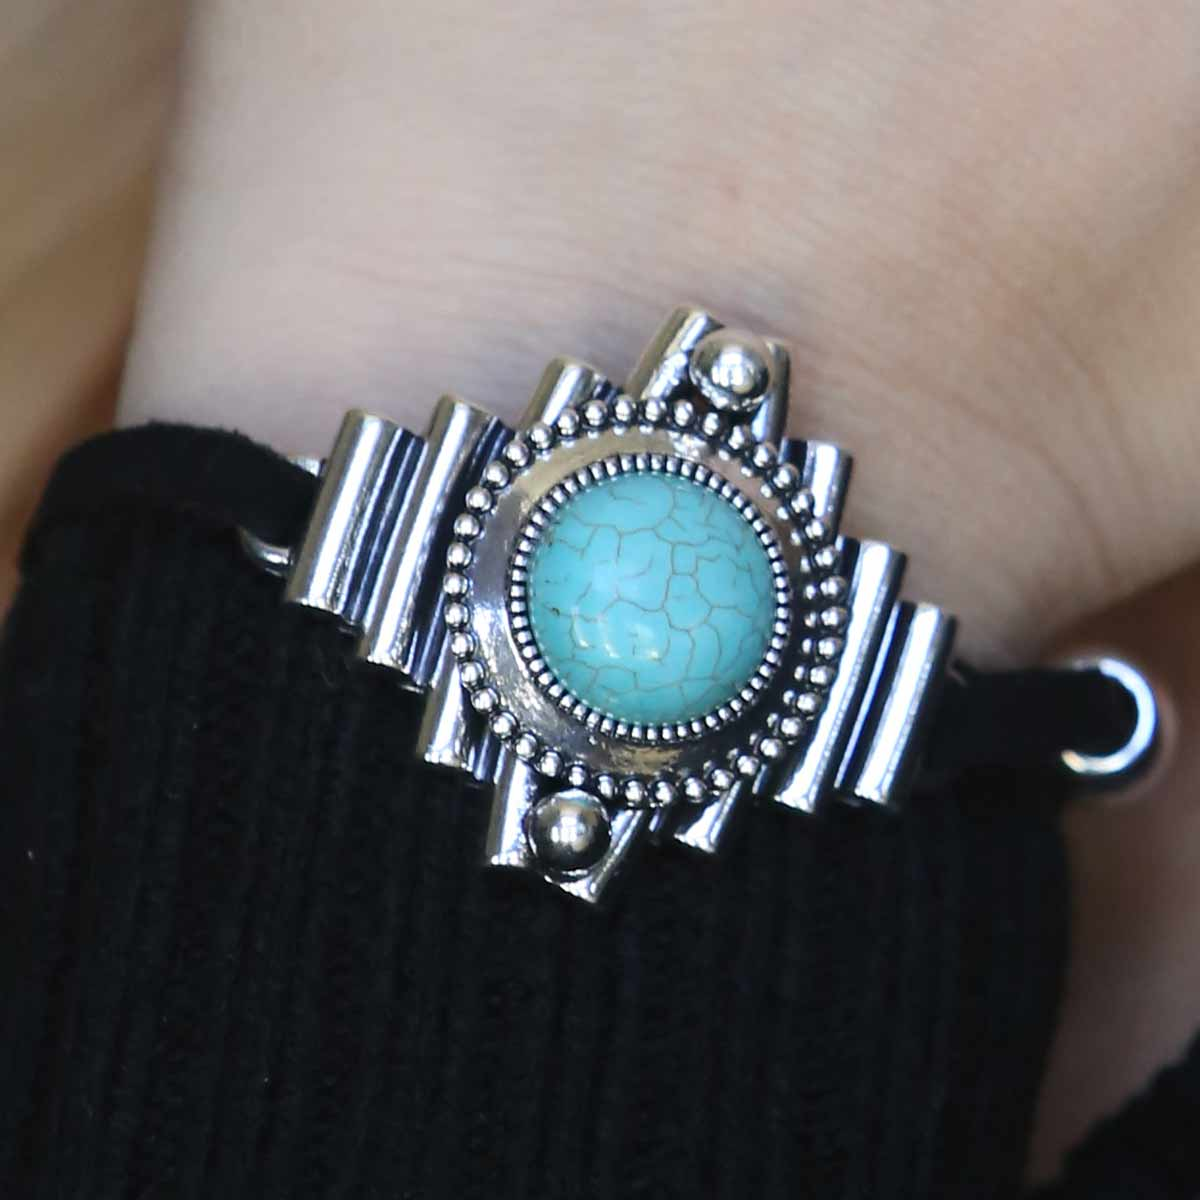 "SILVER AND TURQUOISE 1.5"" BRACELET 7""-8.5"" ON BLACK CORD 70sp"